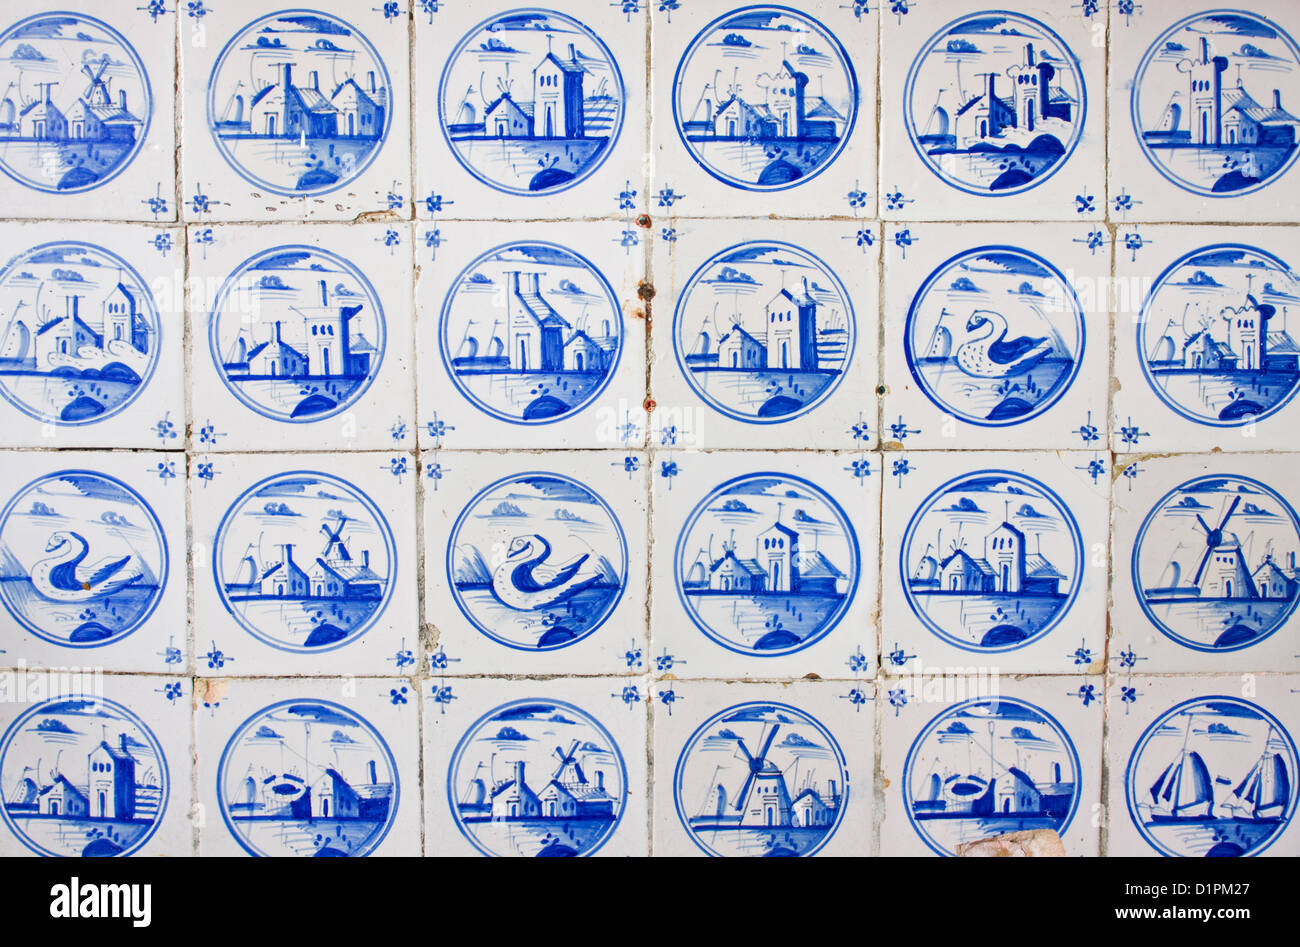 Antique, handpainted dutch tiles on the kitchen wall of an old building - Stock Image